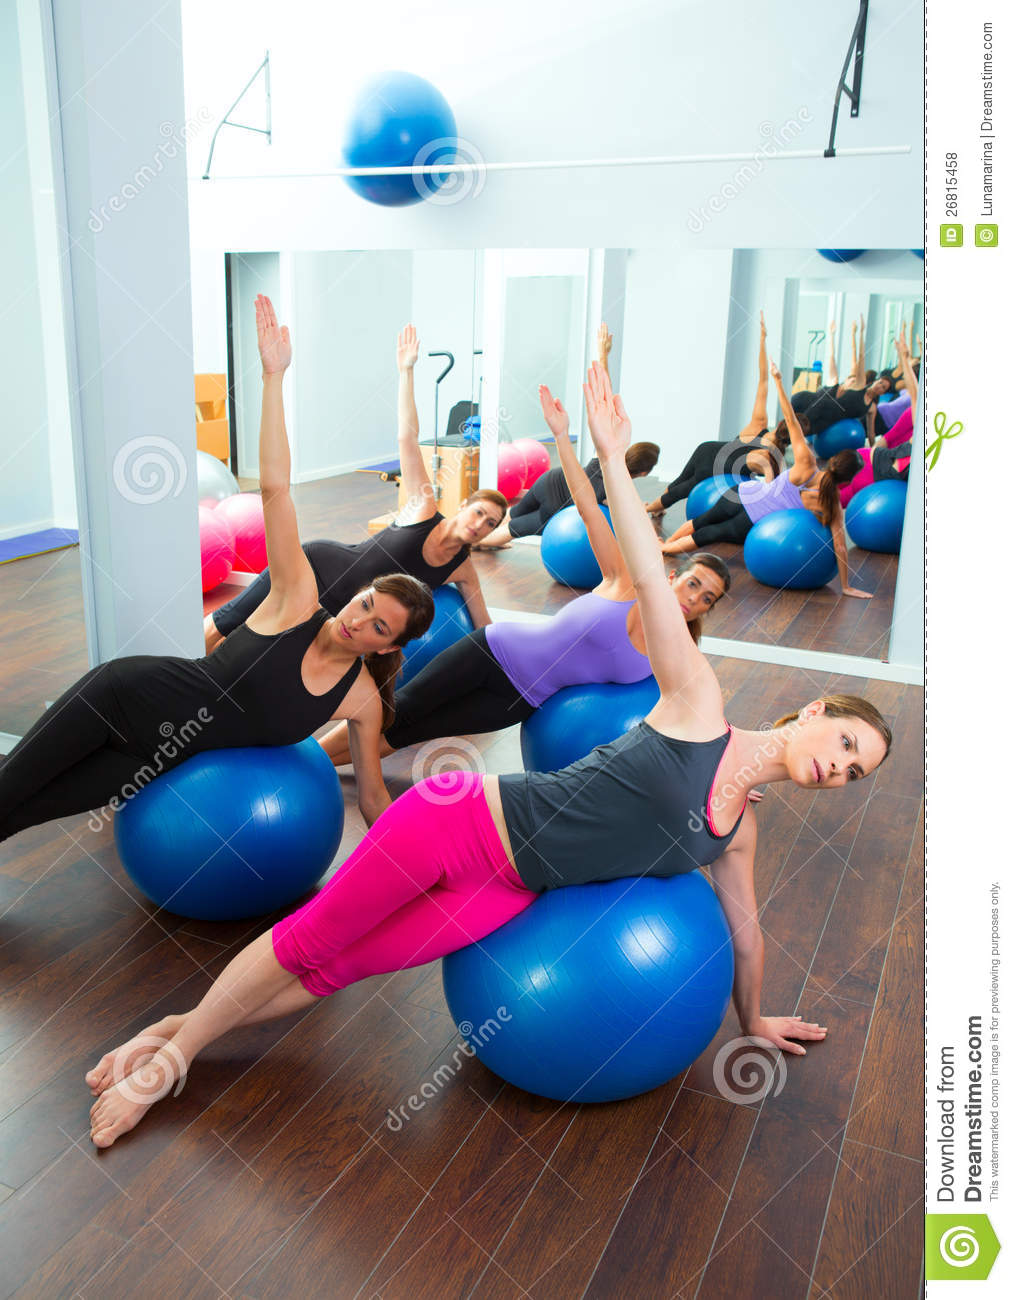 Aerobic pilates women group with stability ball stock for Gimnasio pilates